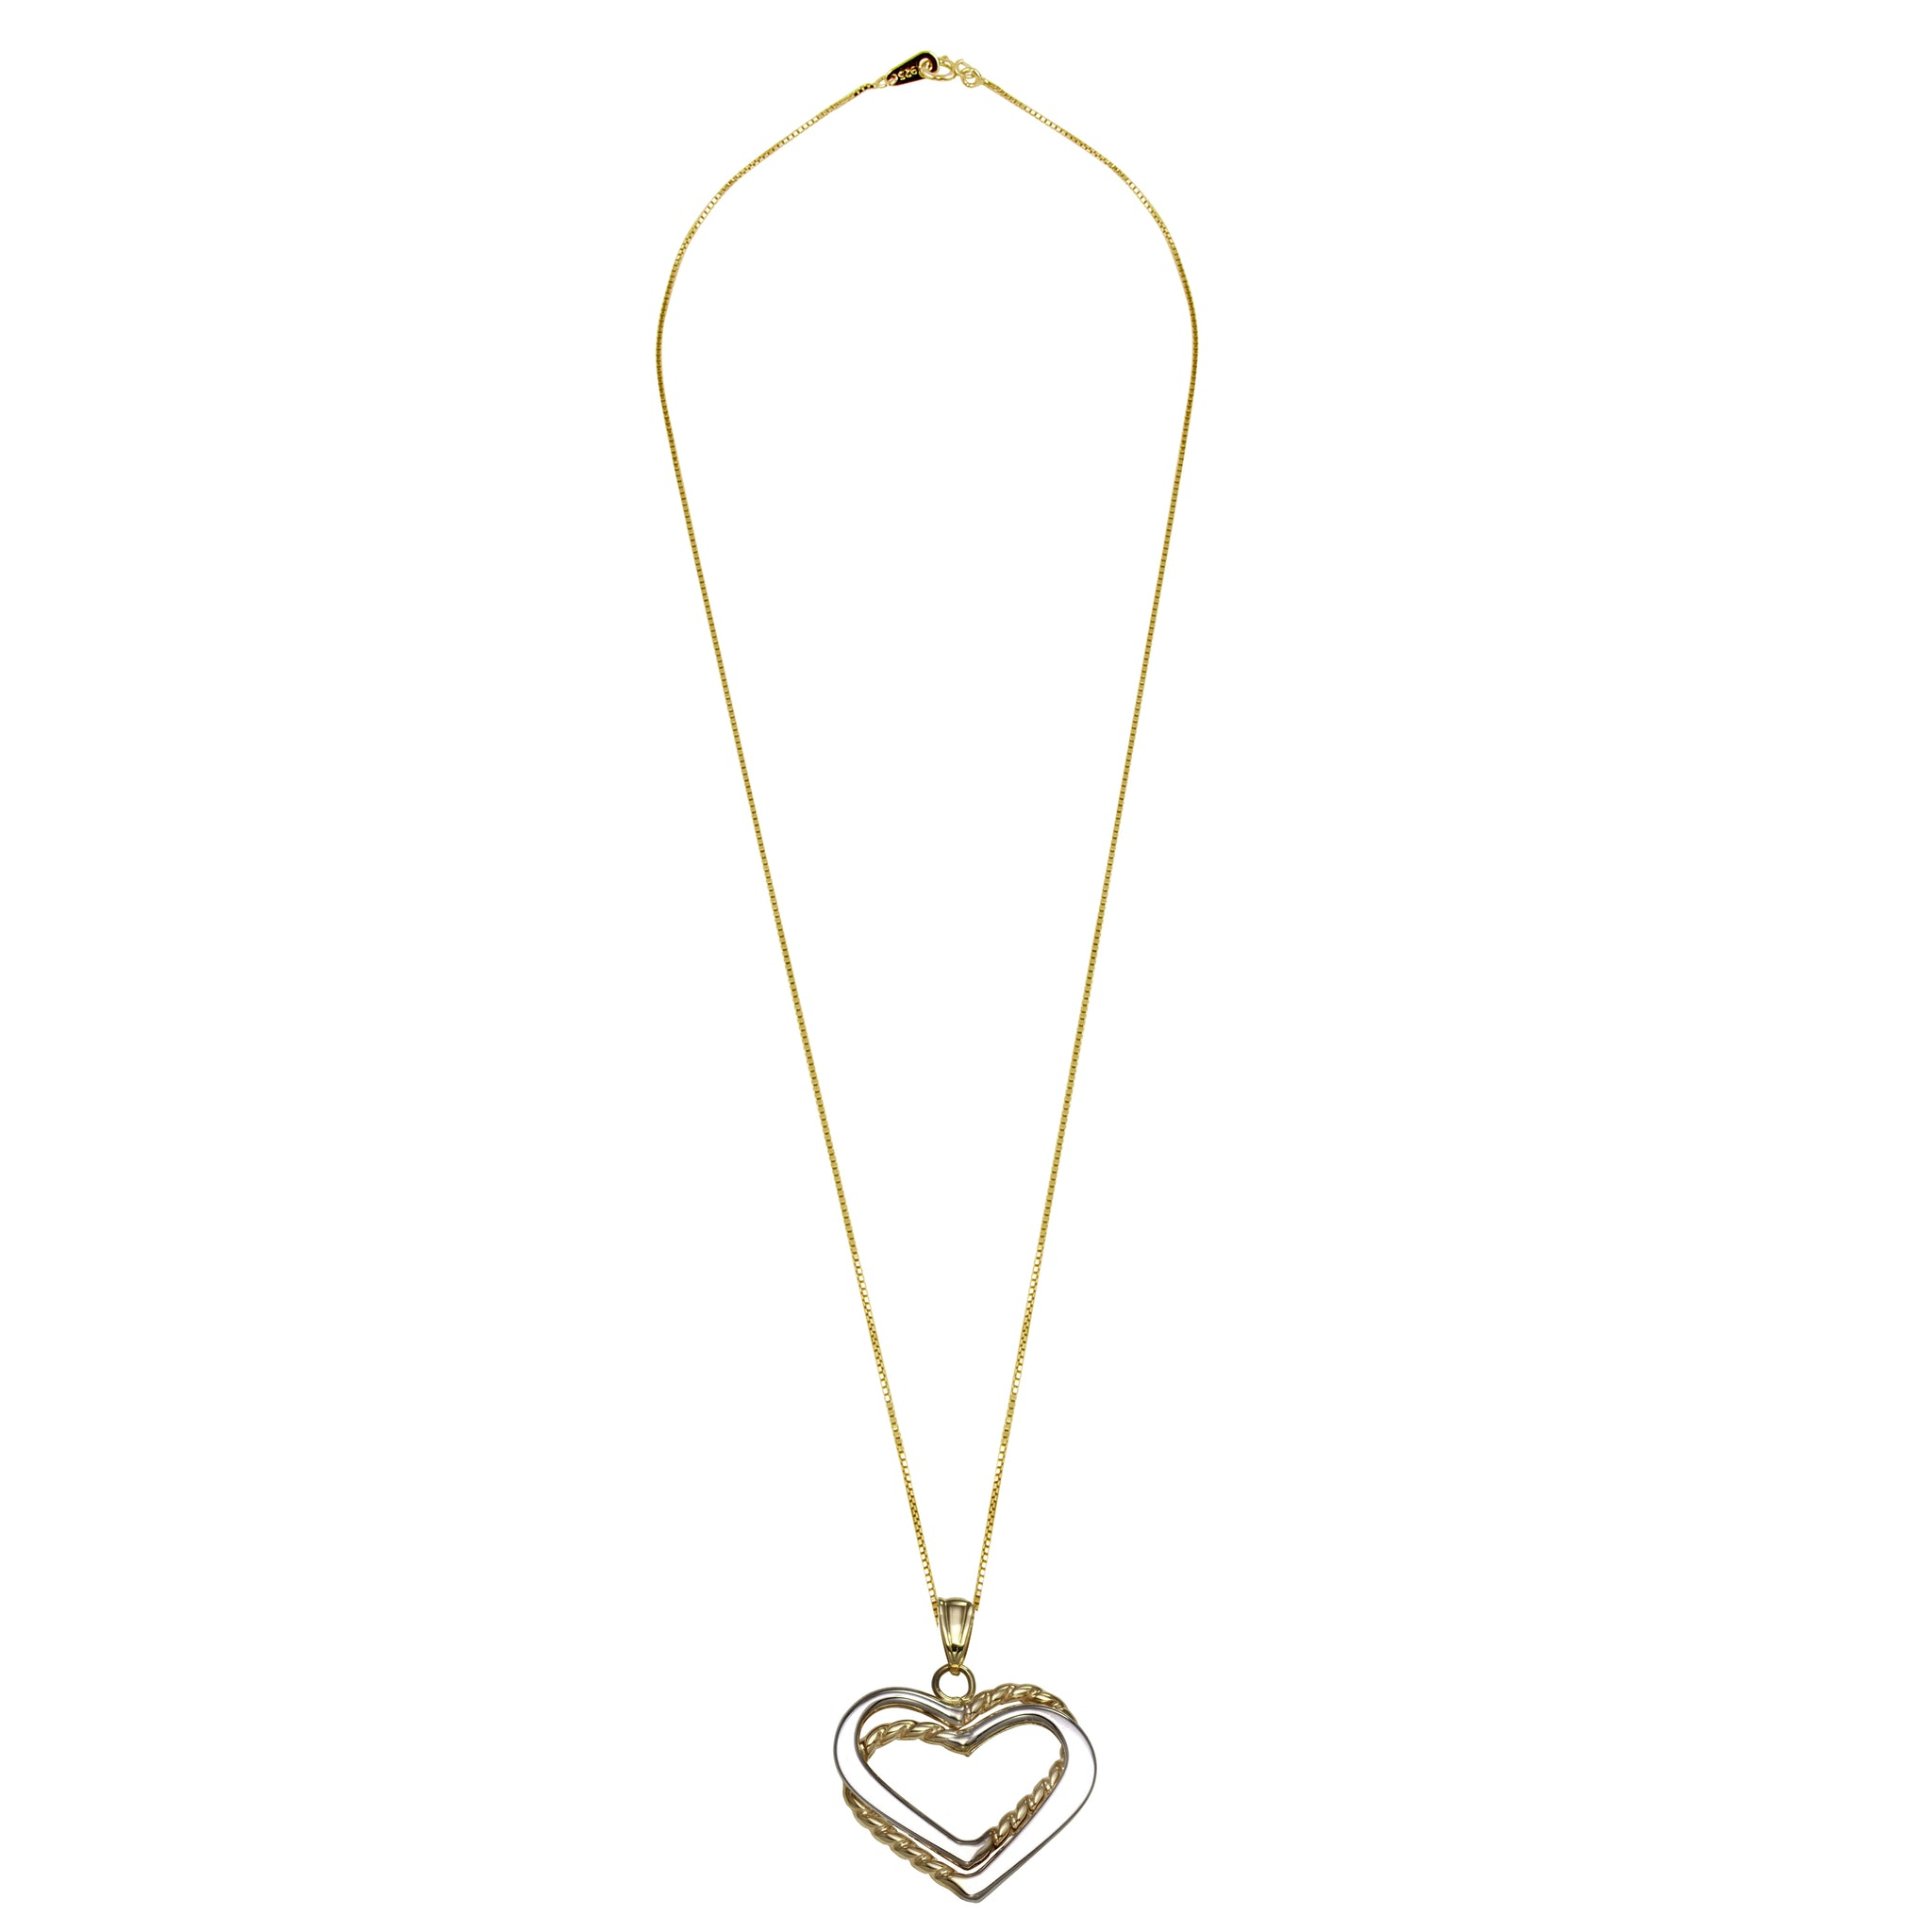 0db91ce36e657 14k Two-Tone Gold Double Layered Hearts Pendant Necklace, 18